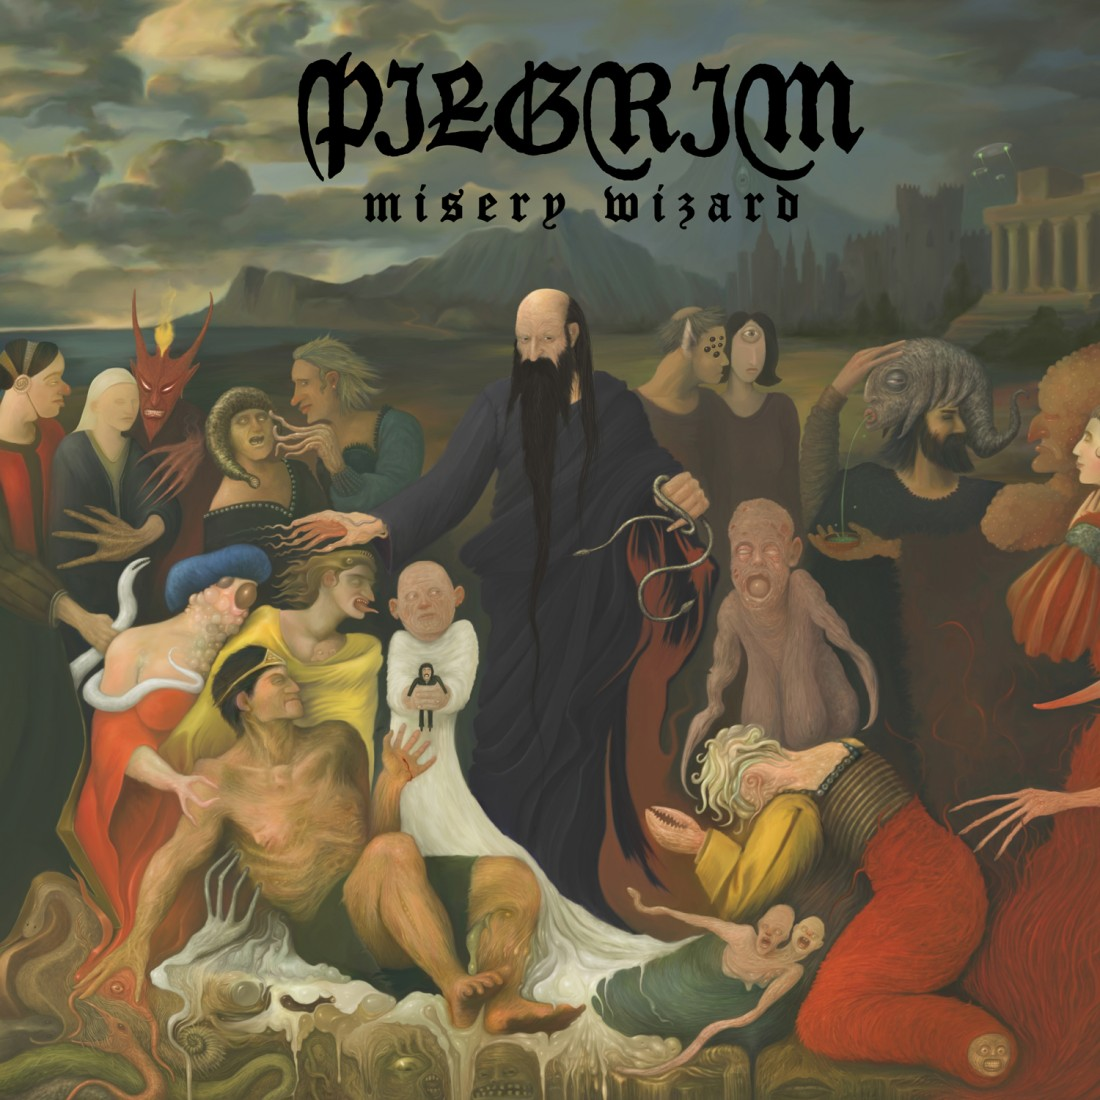 Album Cover for Pilgrim's Misery Wizard